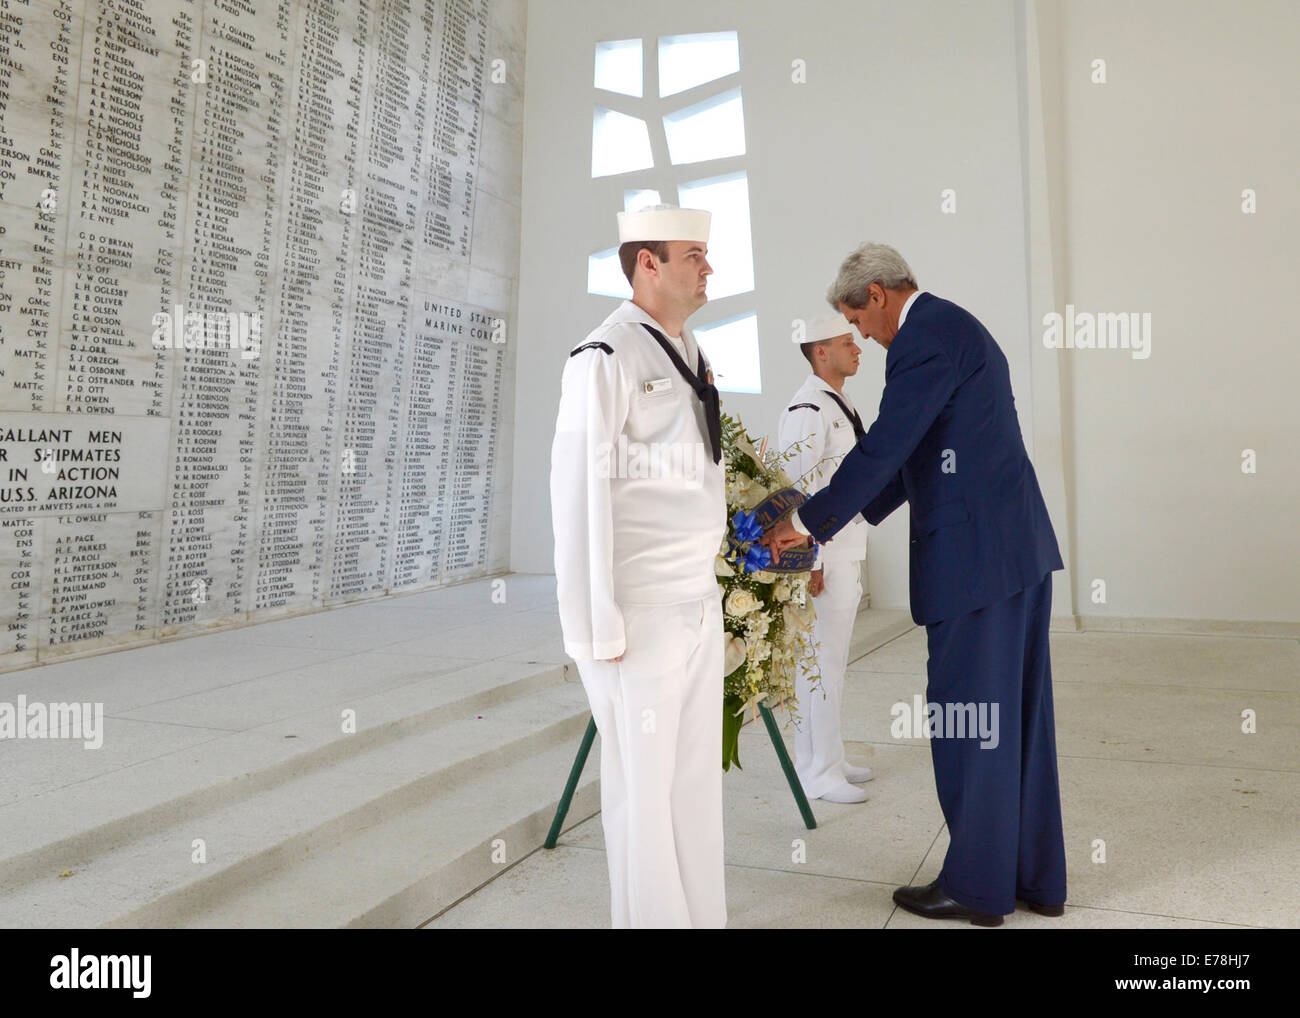 Secretary of State John Kerry, right, visits the USS Arizona Memorial in Pearl Harbor, Hawaii, Aug. 13, 2014. Kerry - Stock Image